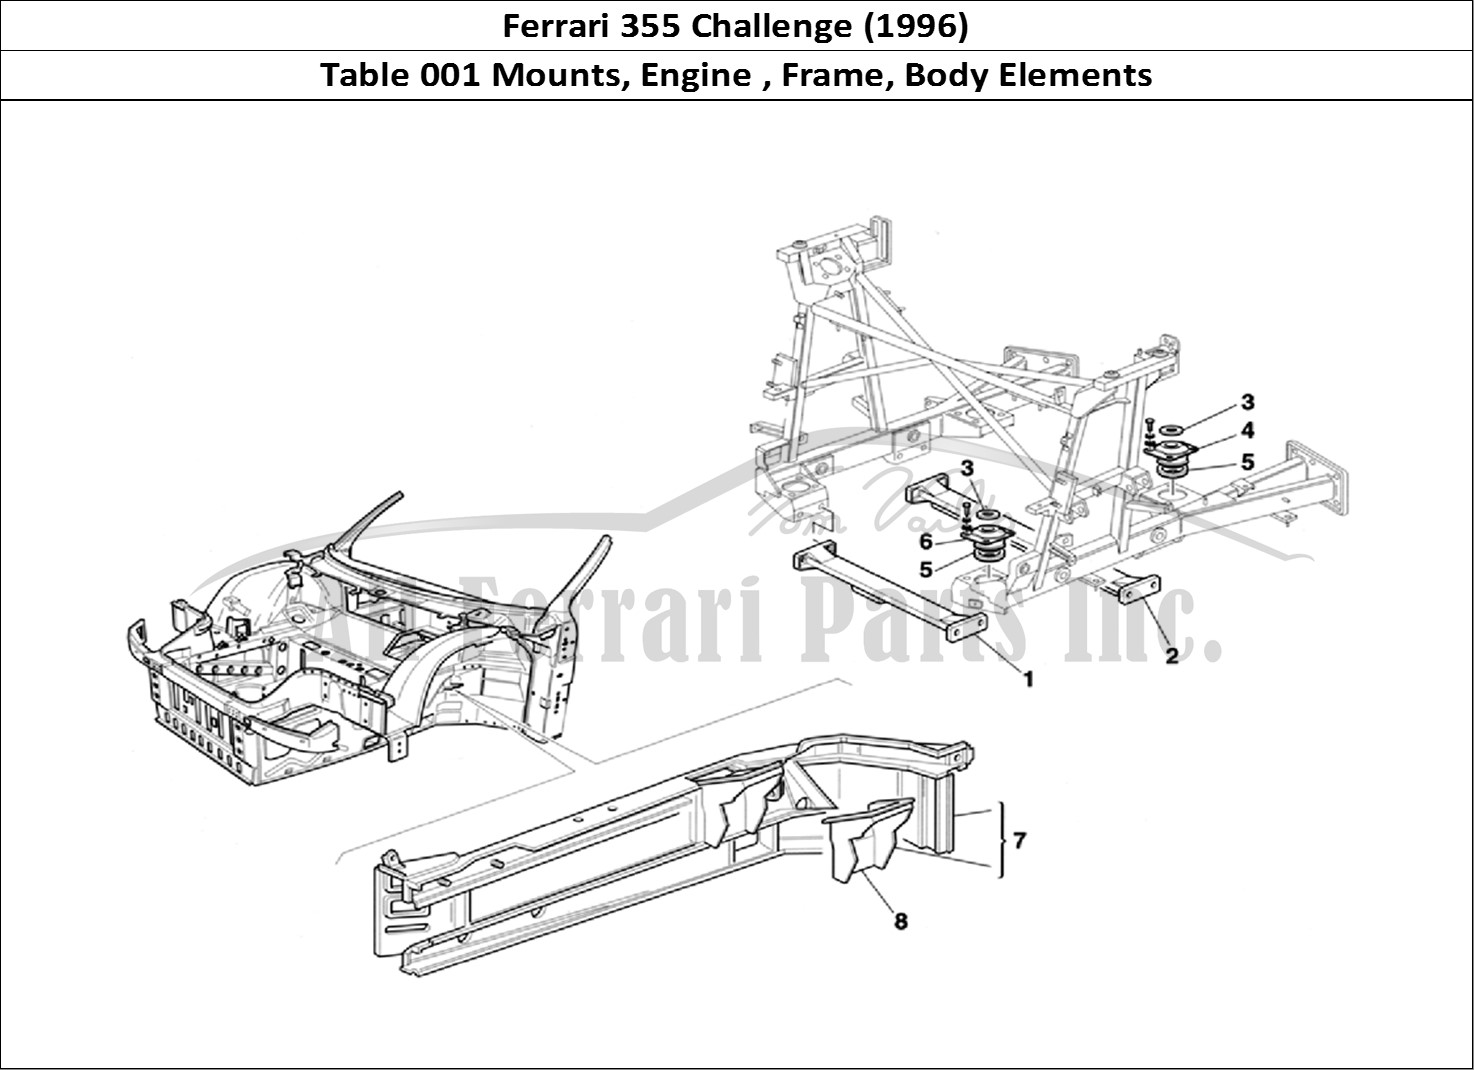 buy original ferrari 355 challenge  1996  001 mounts